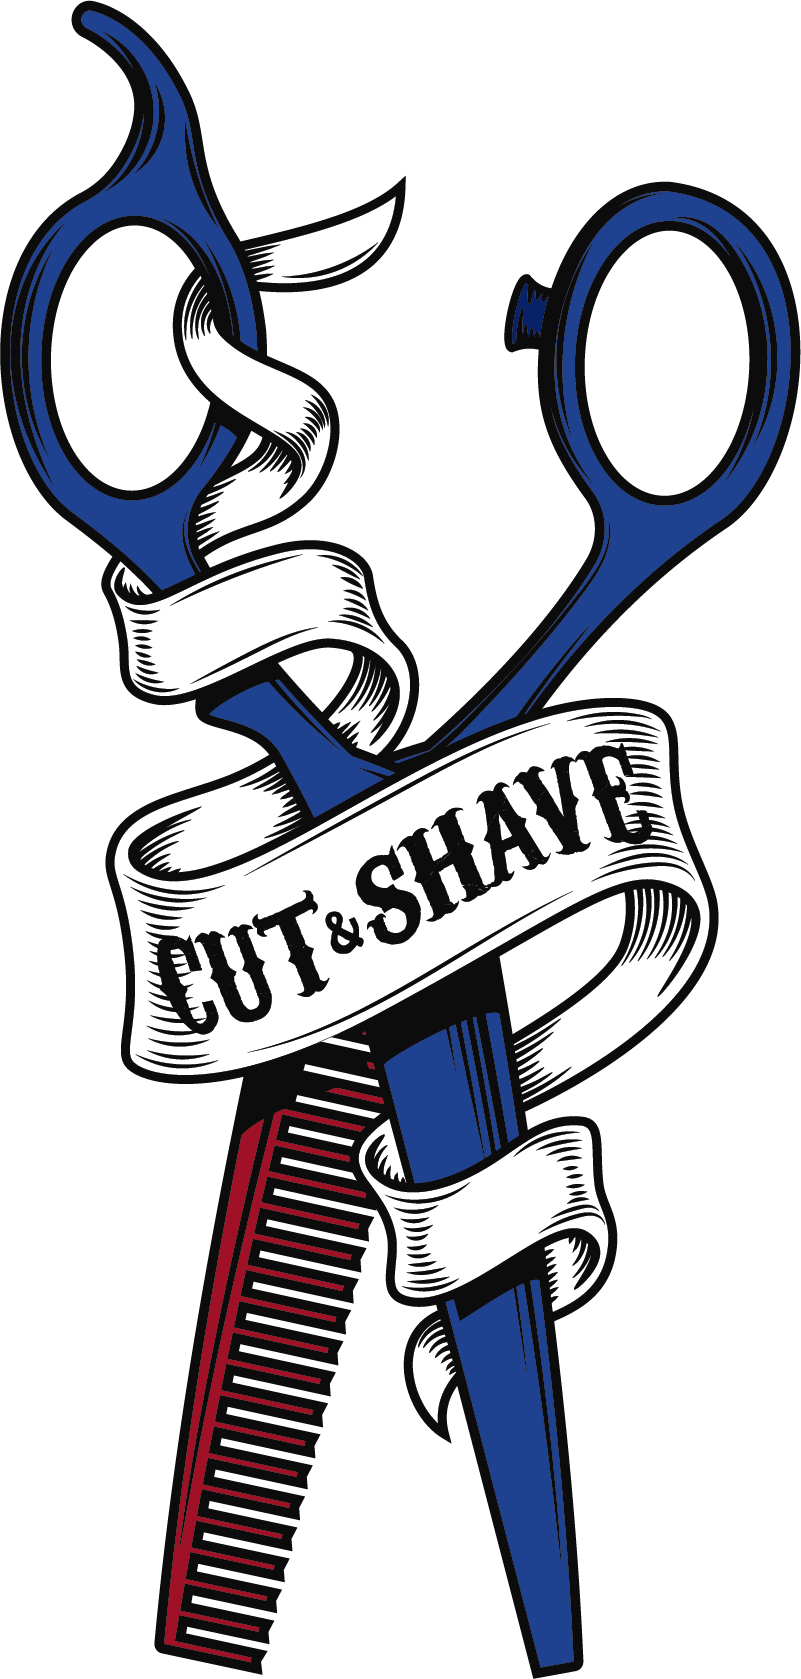 TenStickers. Scissors And Comb Business Sticker. Bring an old timey feel to your barber shop today with this awesome cut and shave mirror decal. Choose from a wide range of sizes!